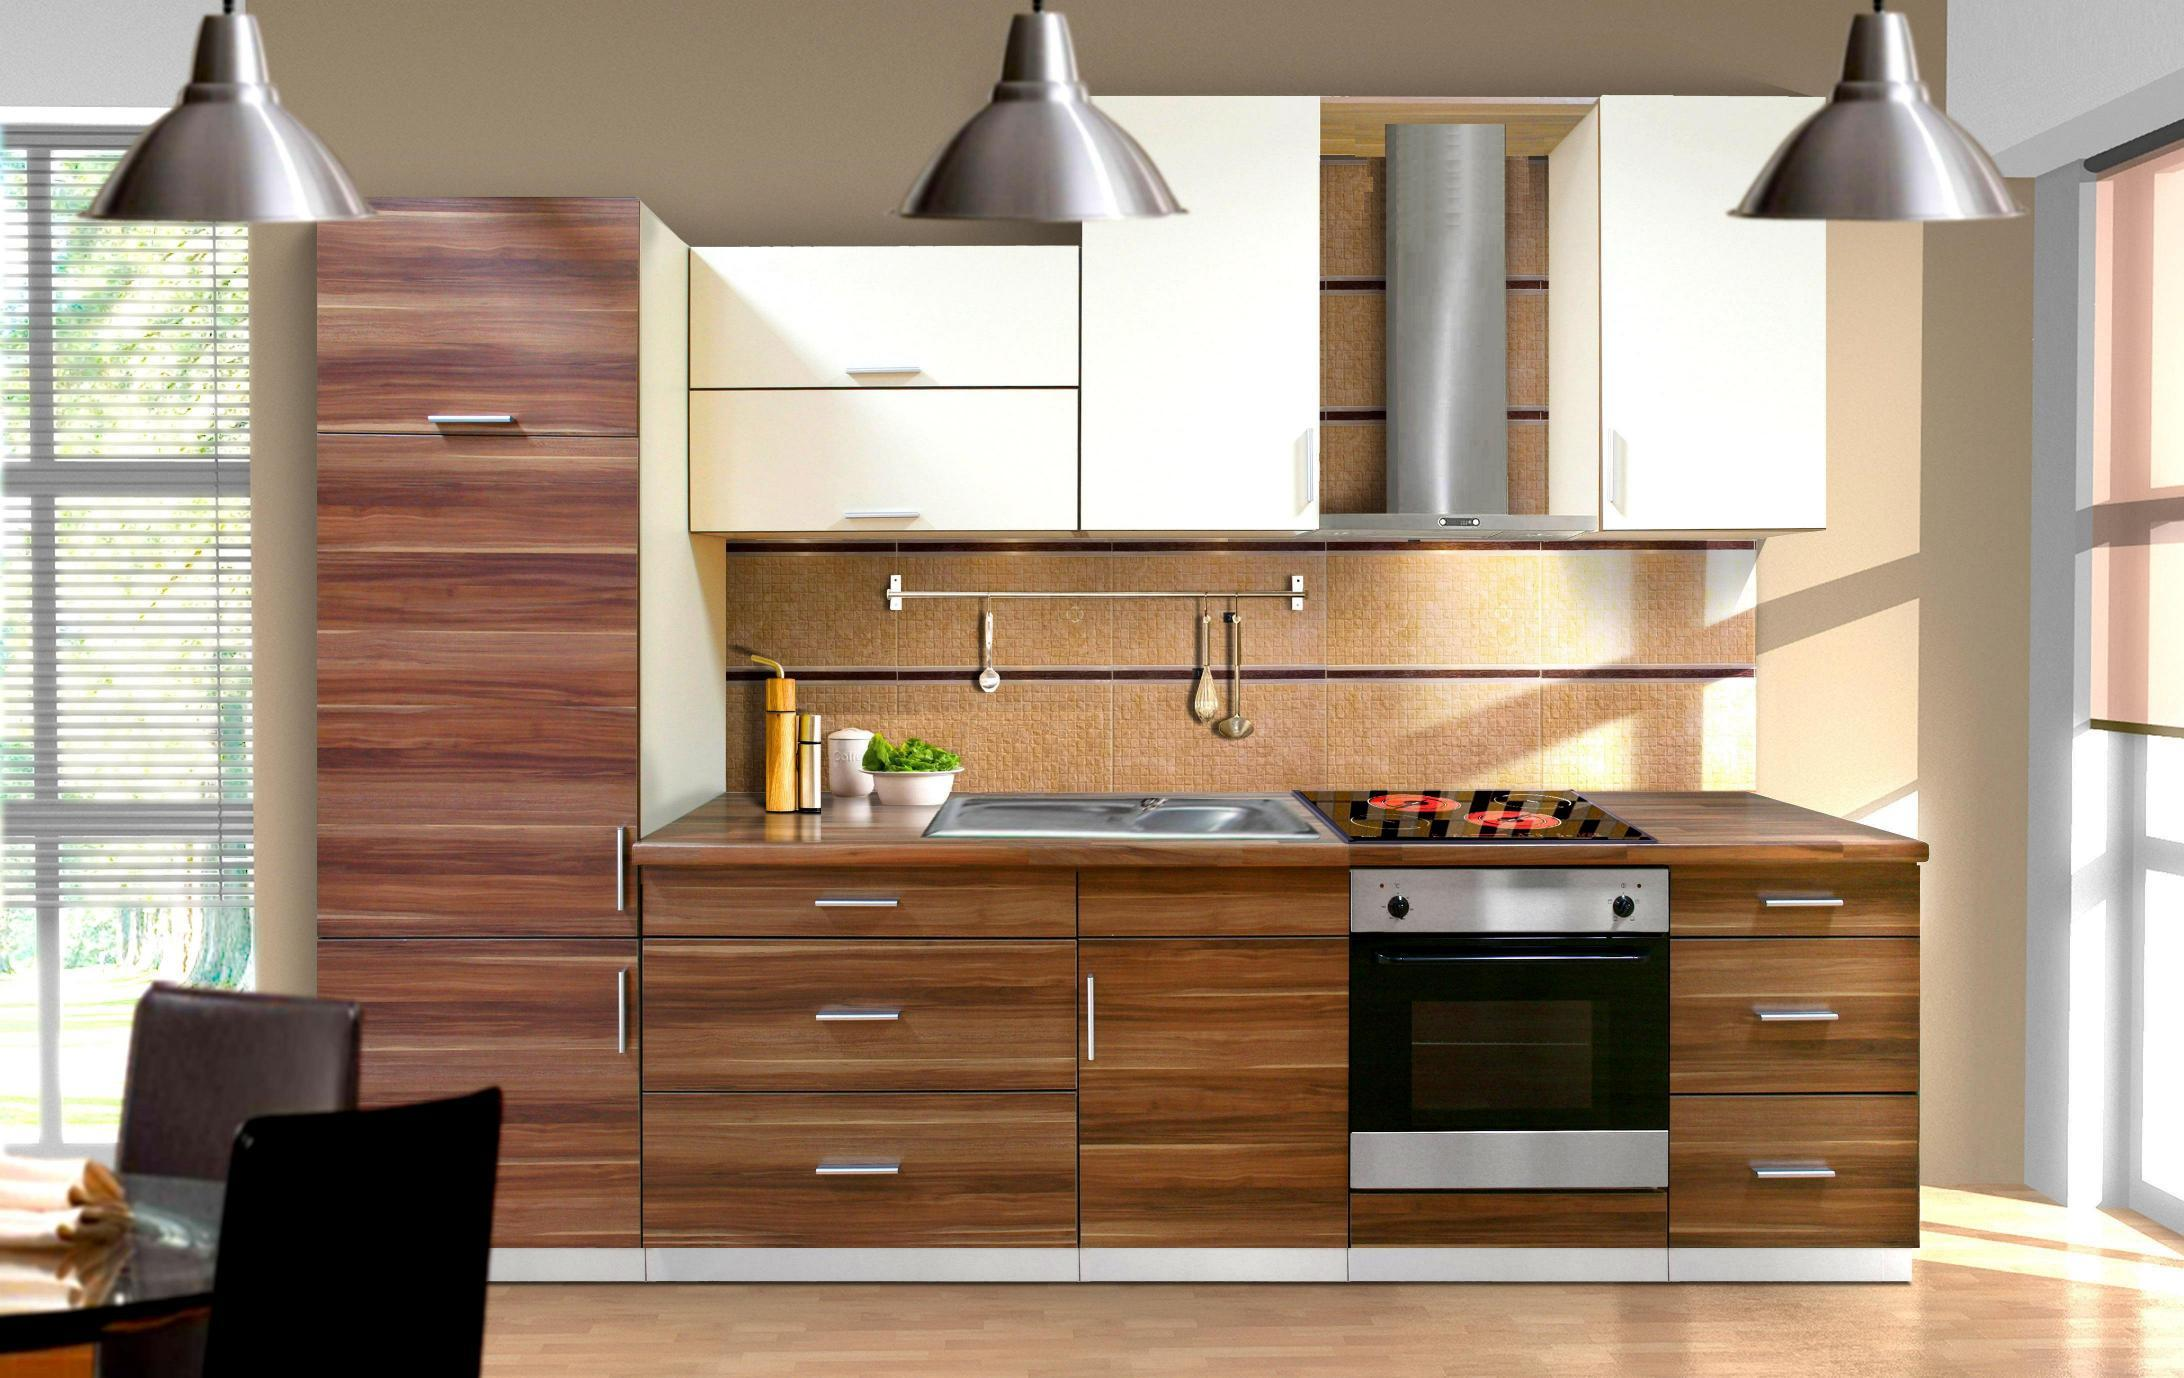 Simple Modern Kitchen Cabinets Ideas With Triple Lights